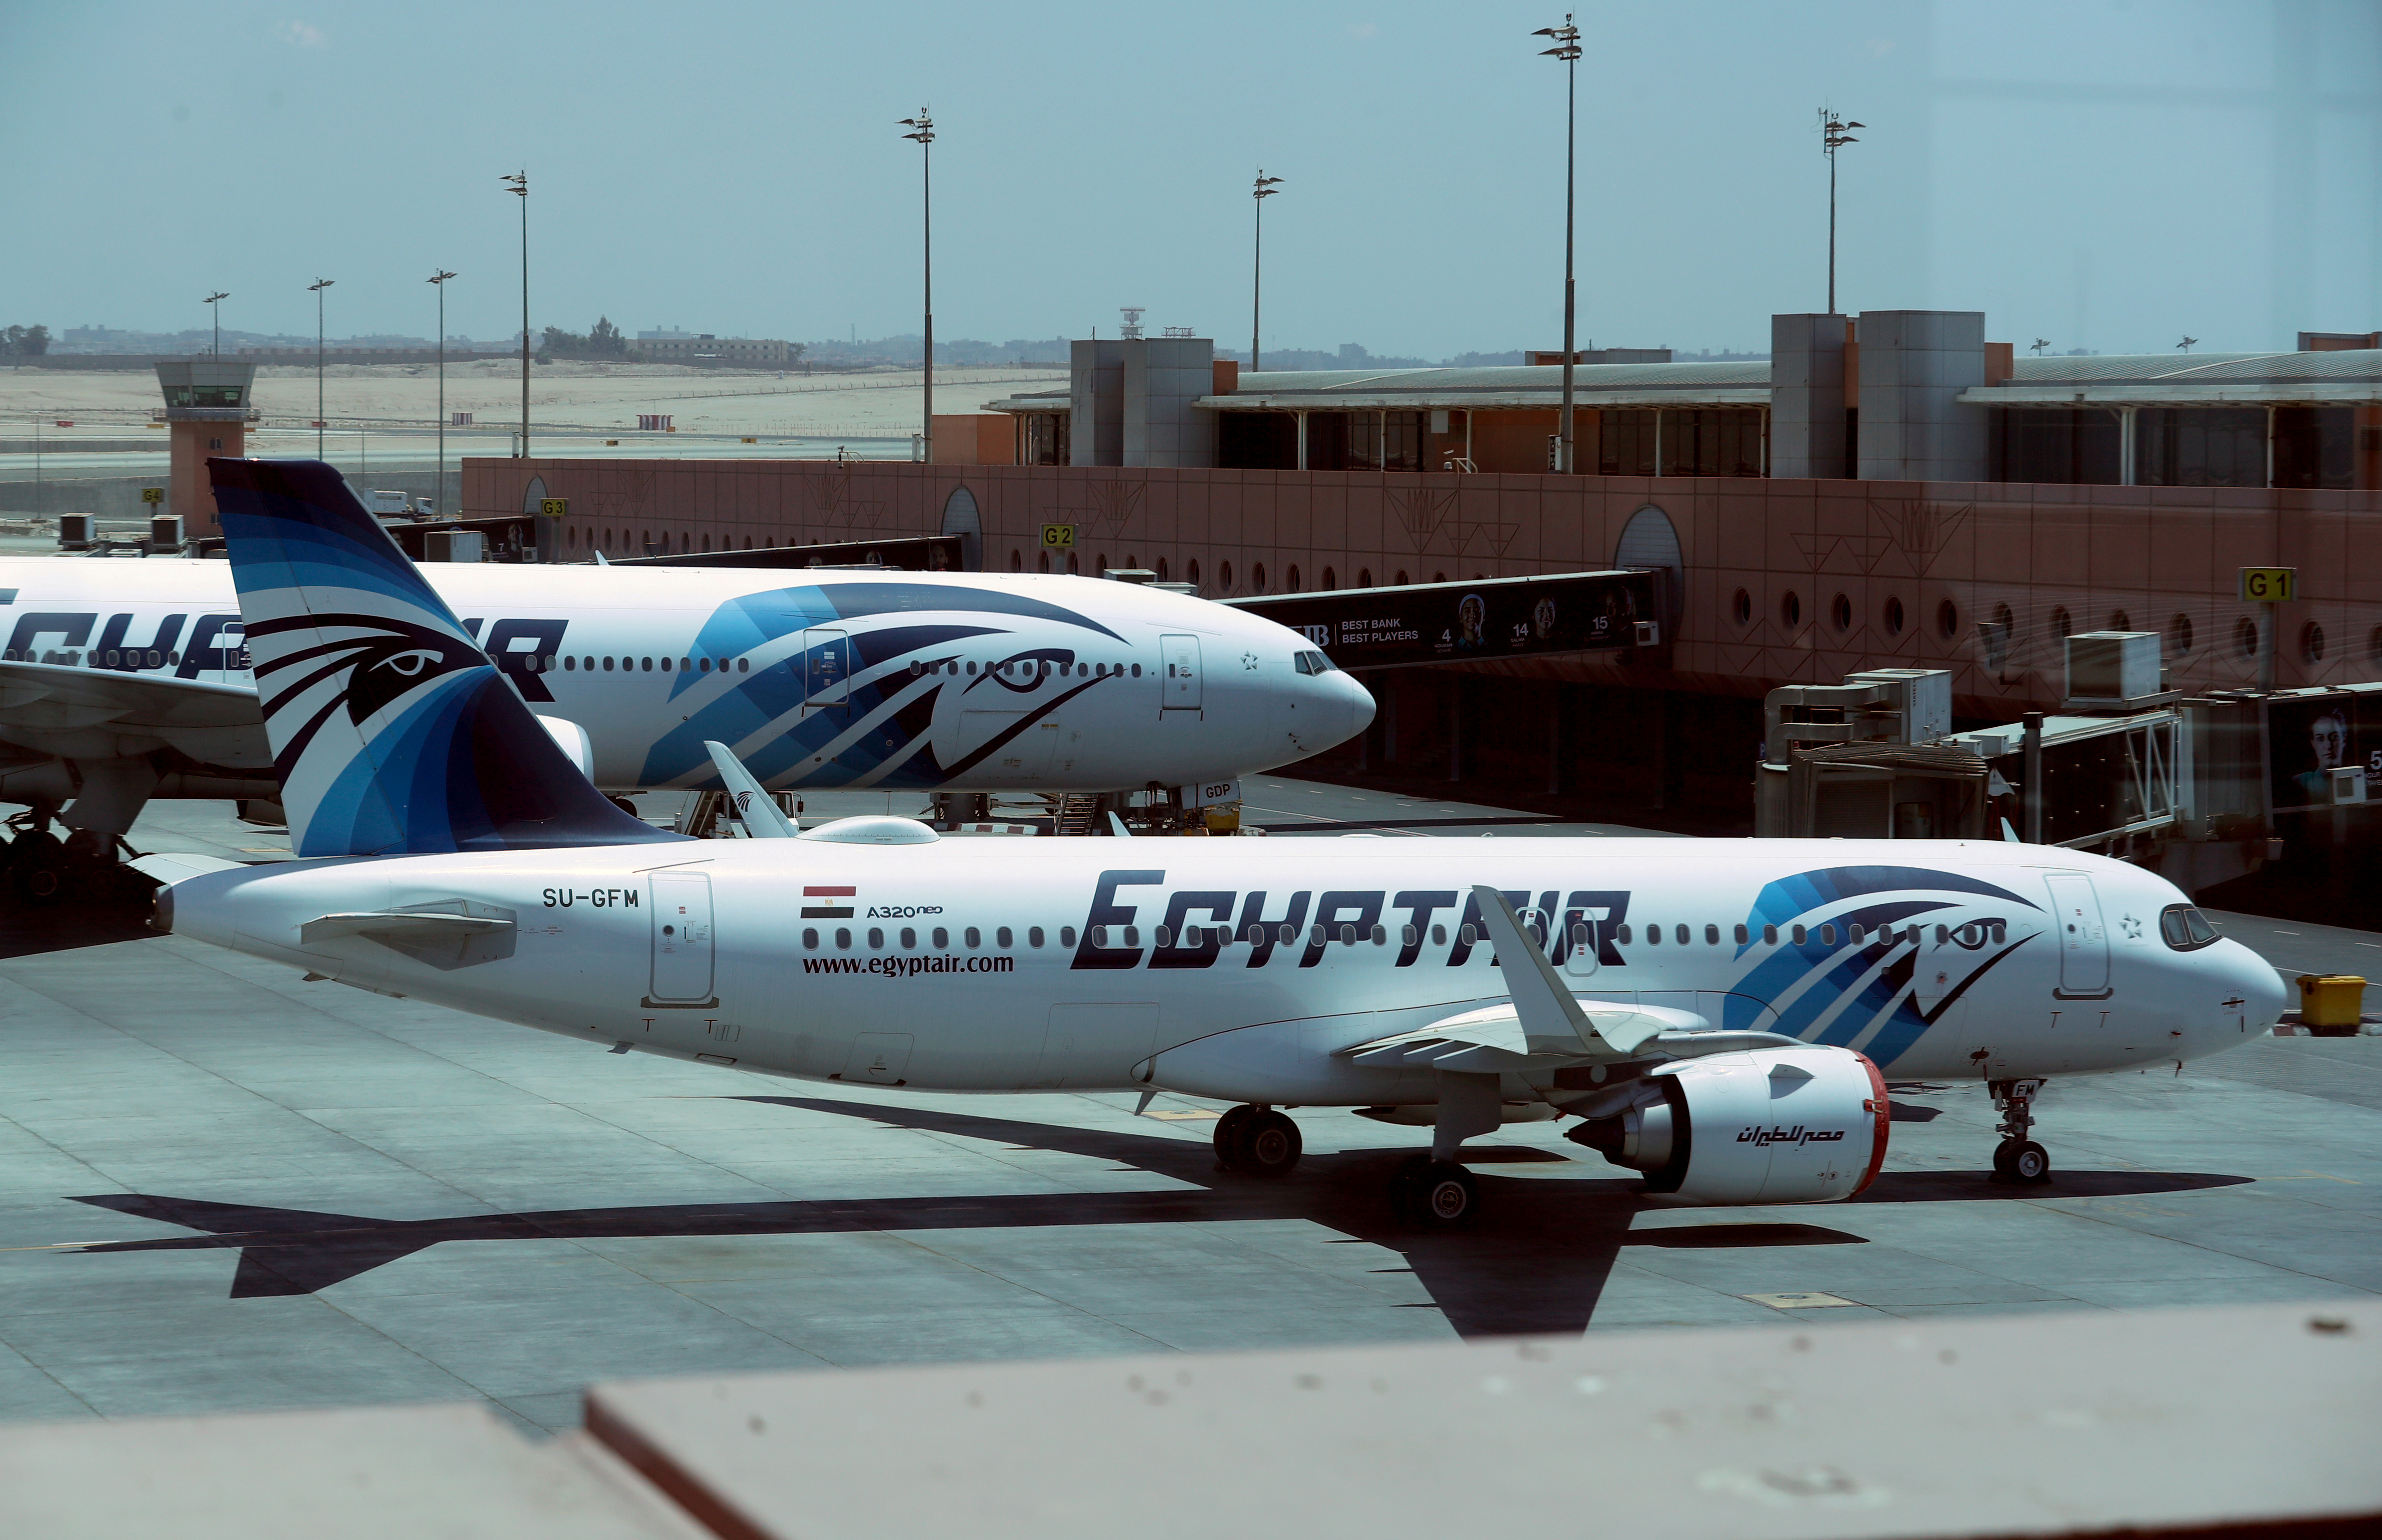 EgyptAir planes are seen on the tarmac, following an outbreak of the coronavirus disease (COVID-19), at Cairo International Airport in Cairo, Egypt, June 18, 2020. REUTERS/Mohamed Abd El Ghany